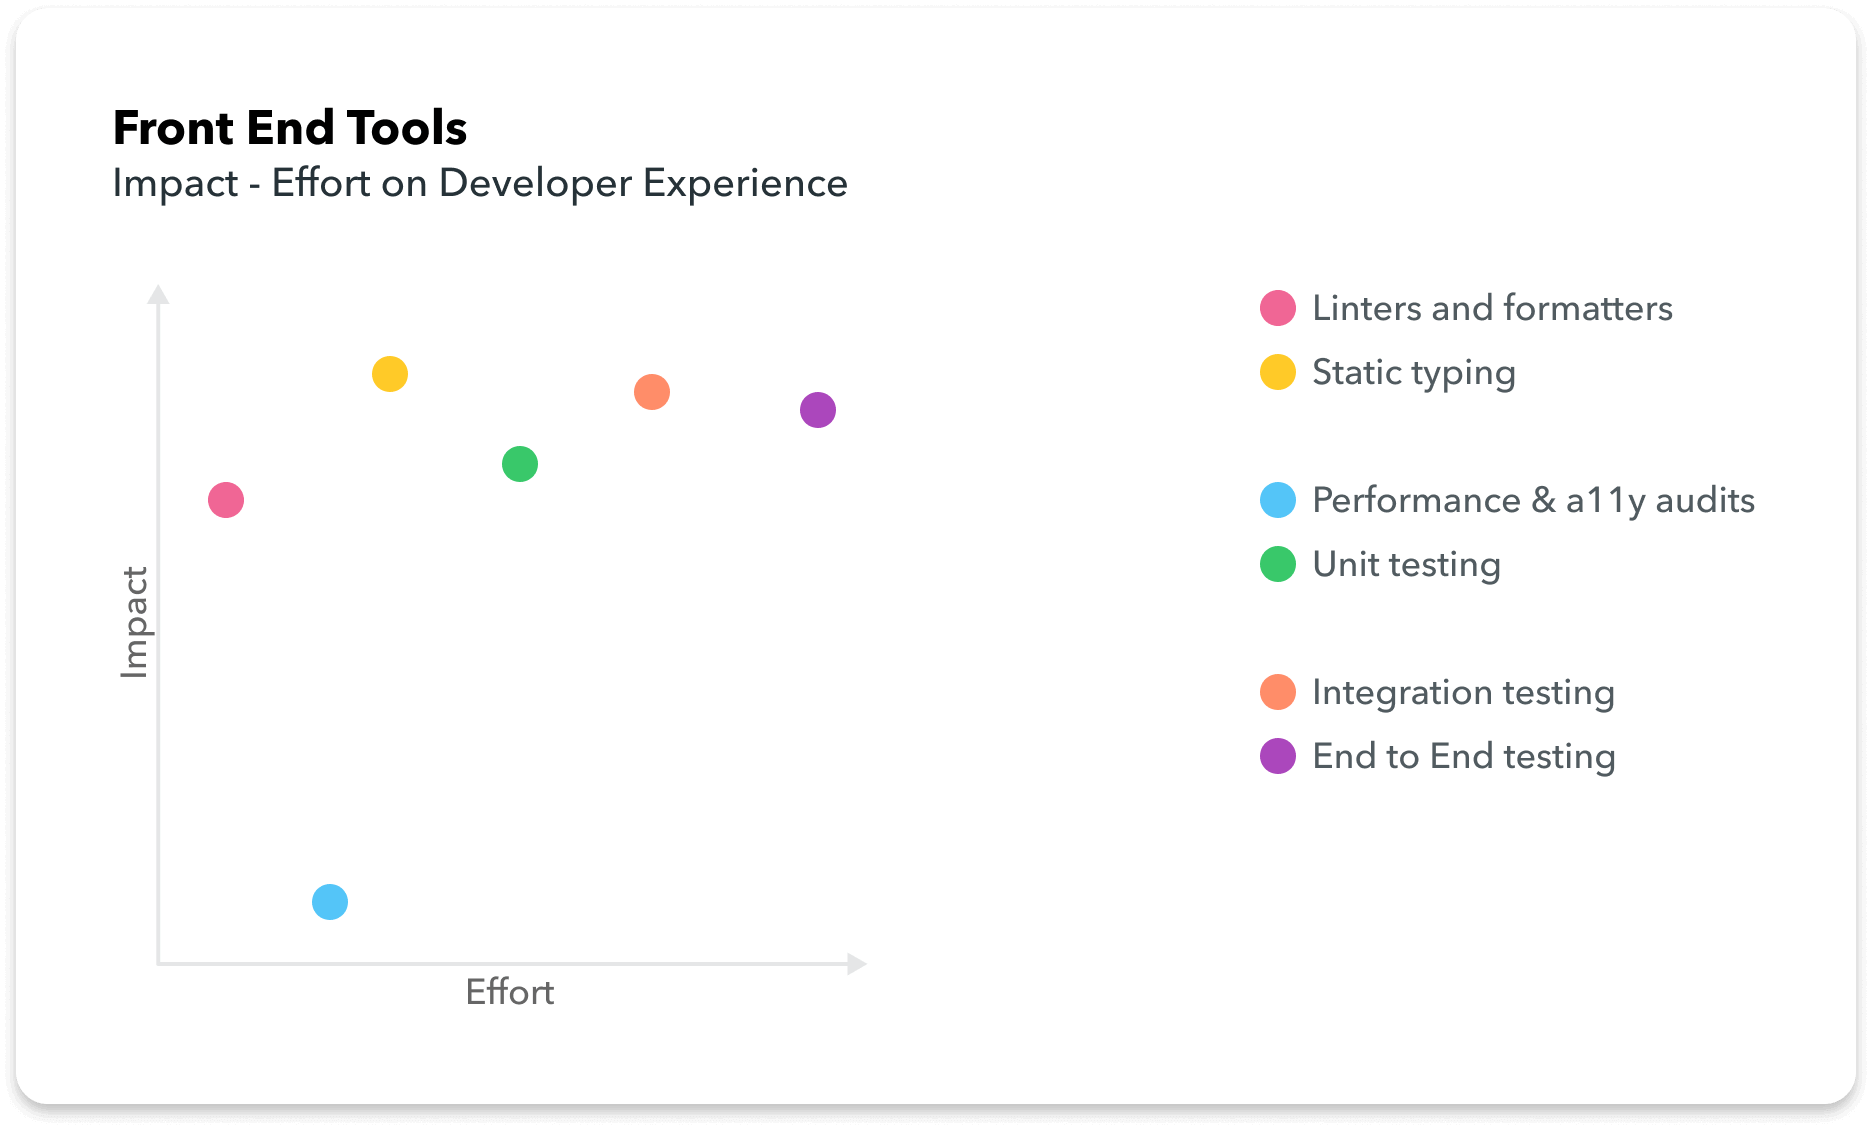 Front End Tools DX Impact-Effort Chart